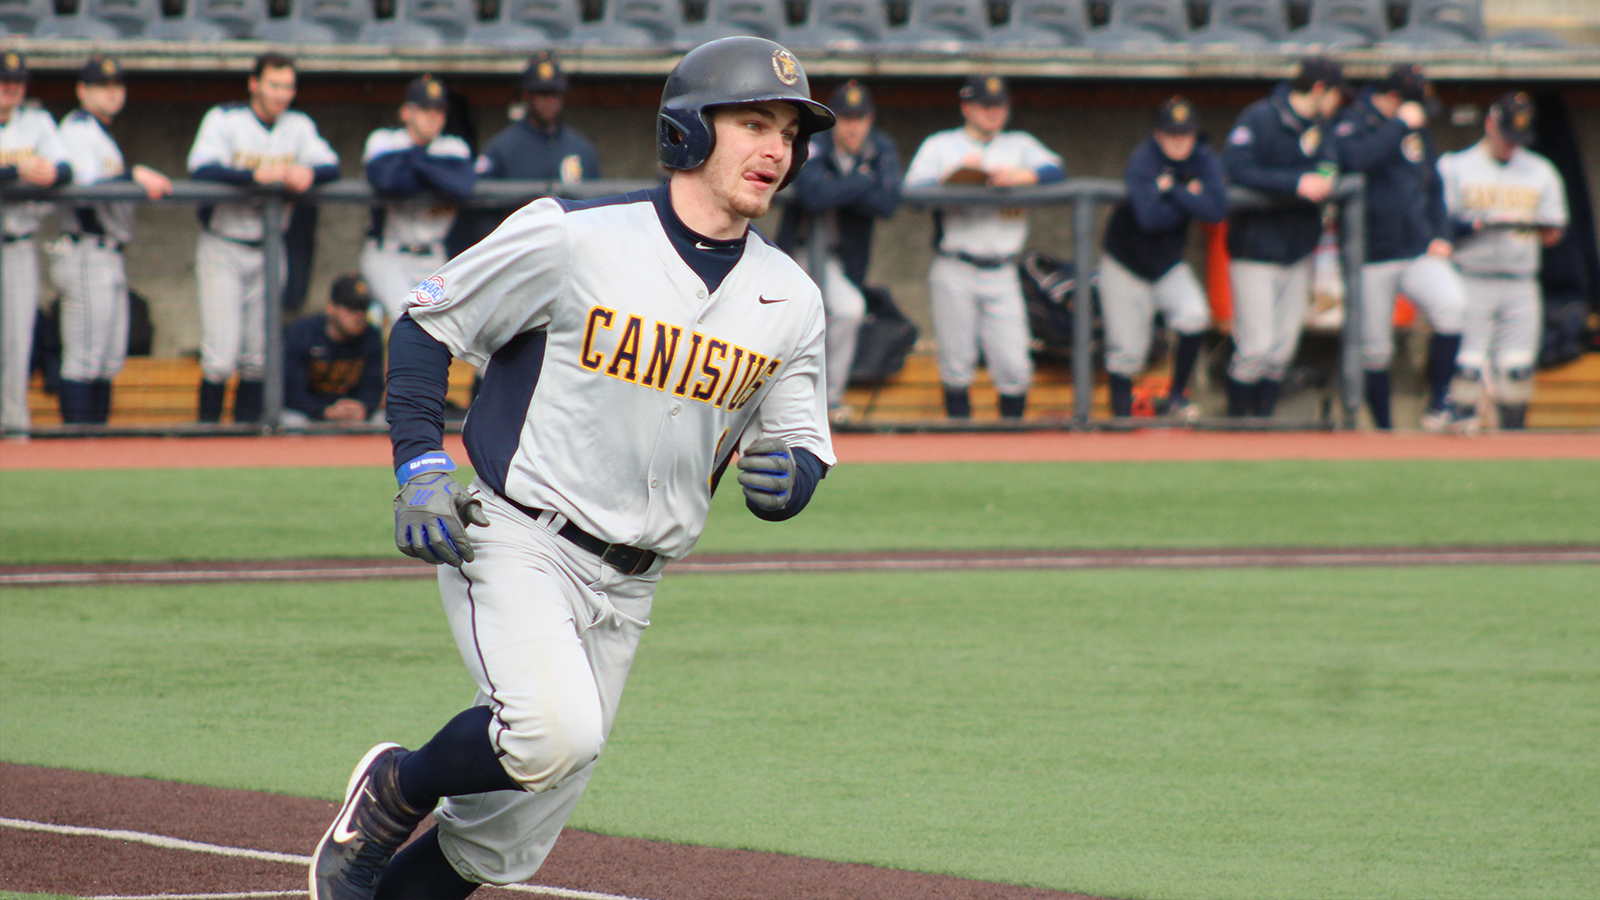 INF Conner Morro (Cheltenham, Ont.) had 48 hits for the Canisius Golden Griffs.